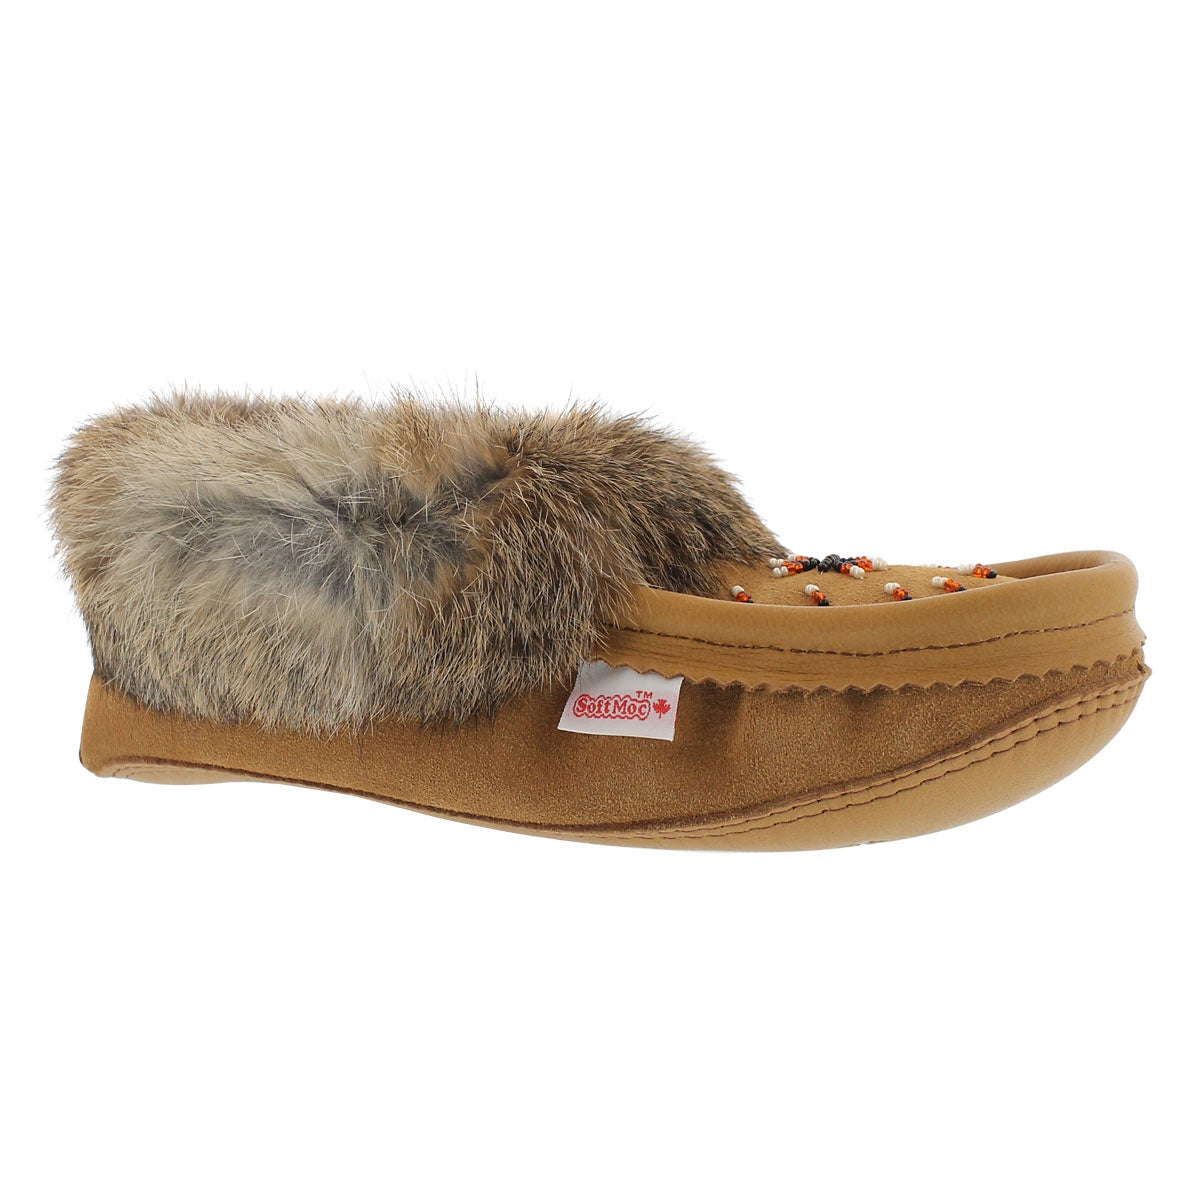 Lds tan rabbit fur moccasin